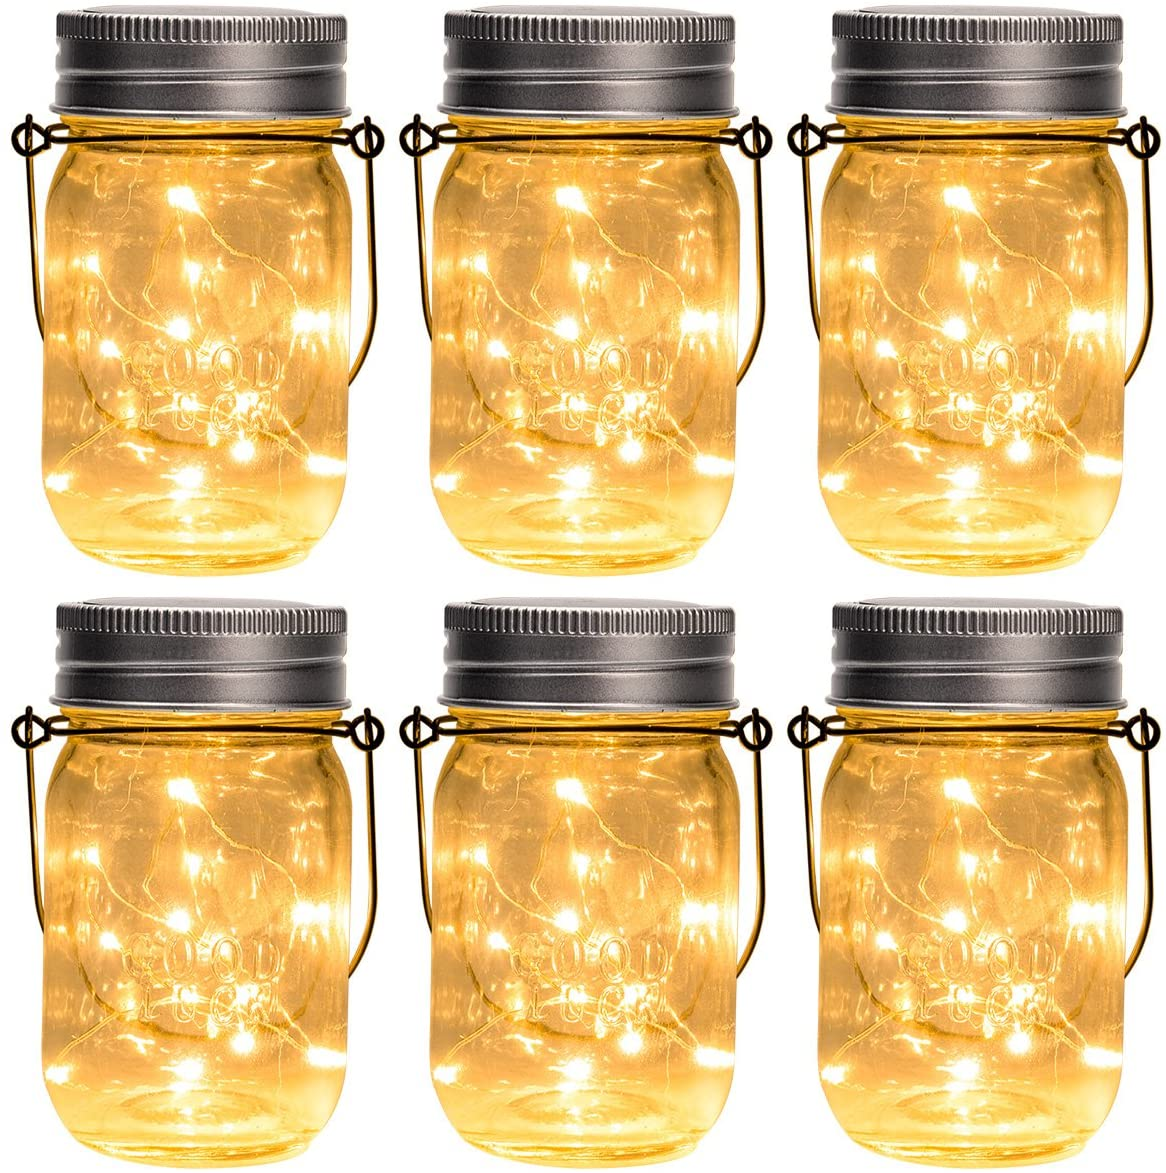 Set of 6 solar-powered hanging mason jars